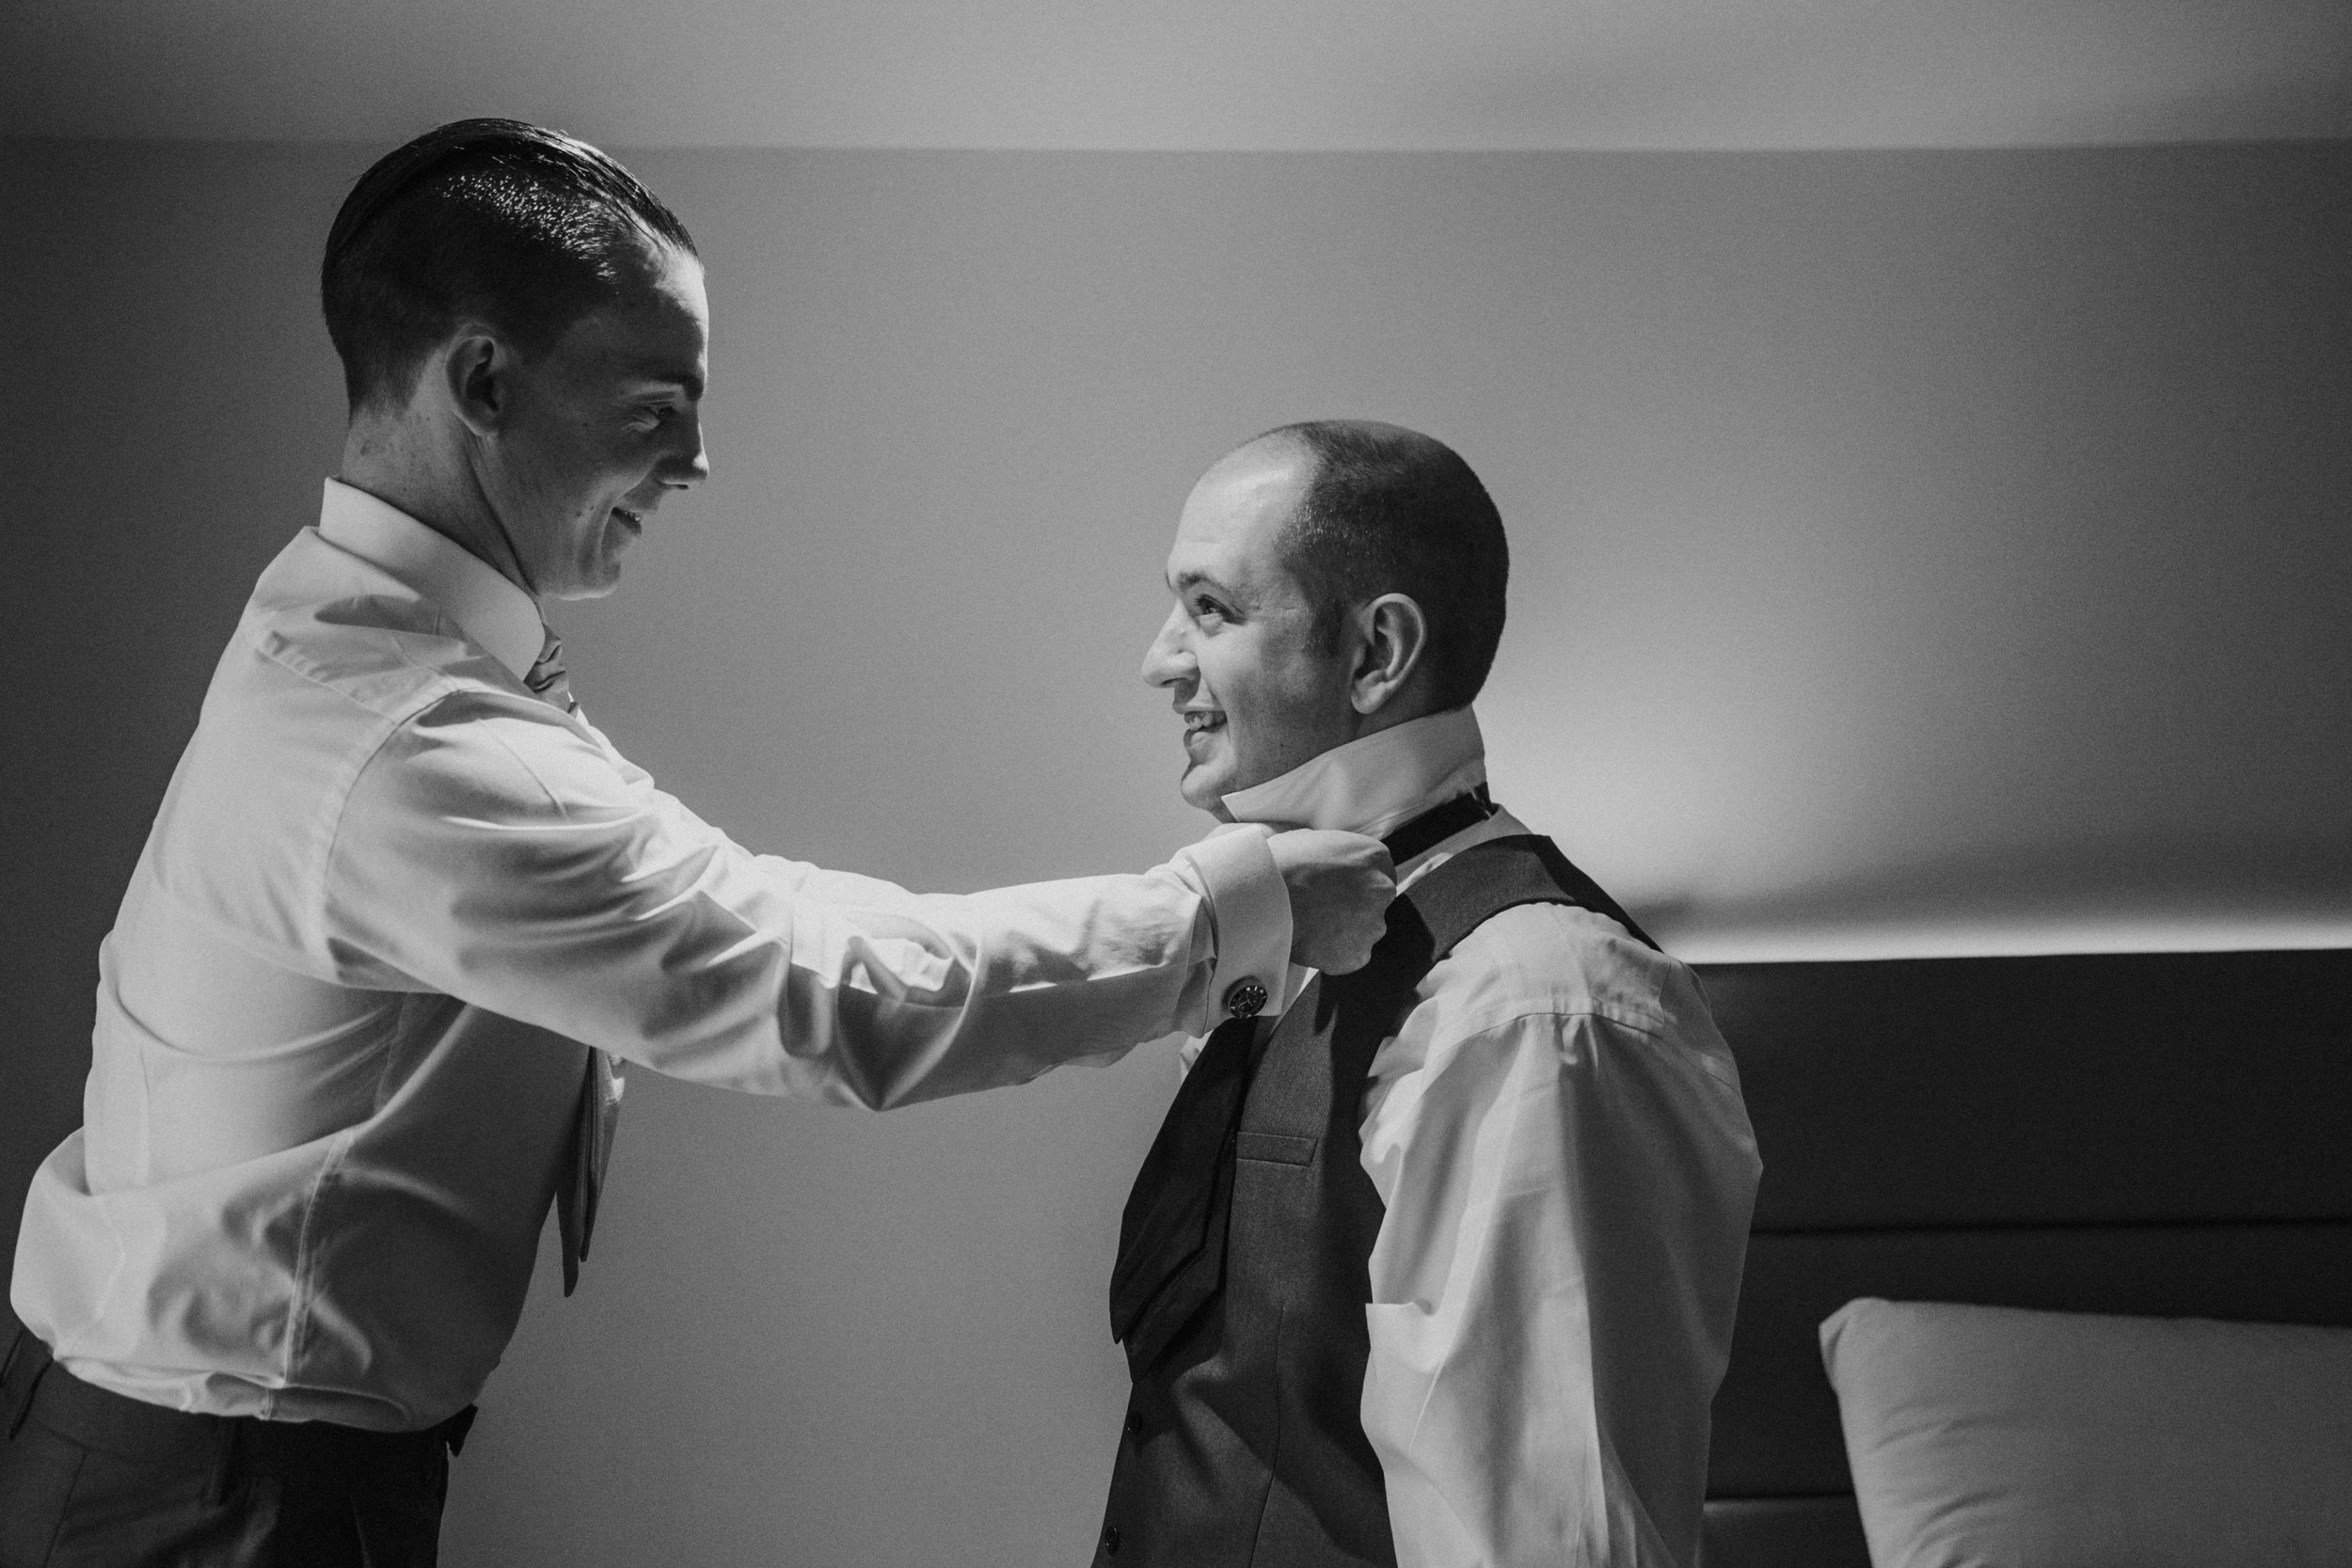 northbrook-park-hampshire-spring-winter-wedding-photography-groom-prep-9